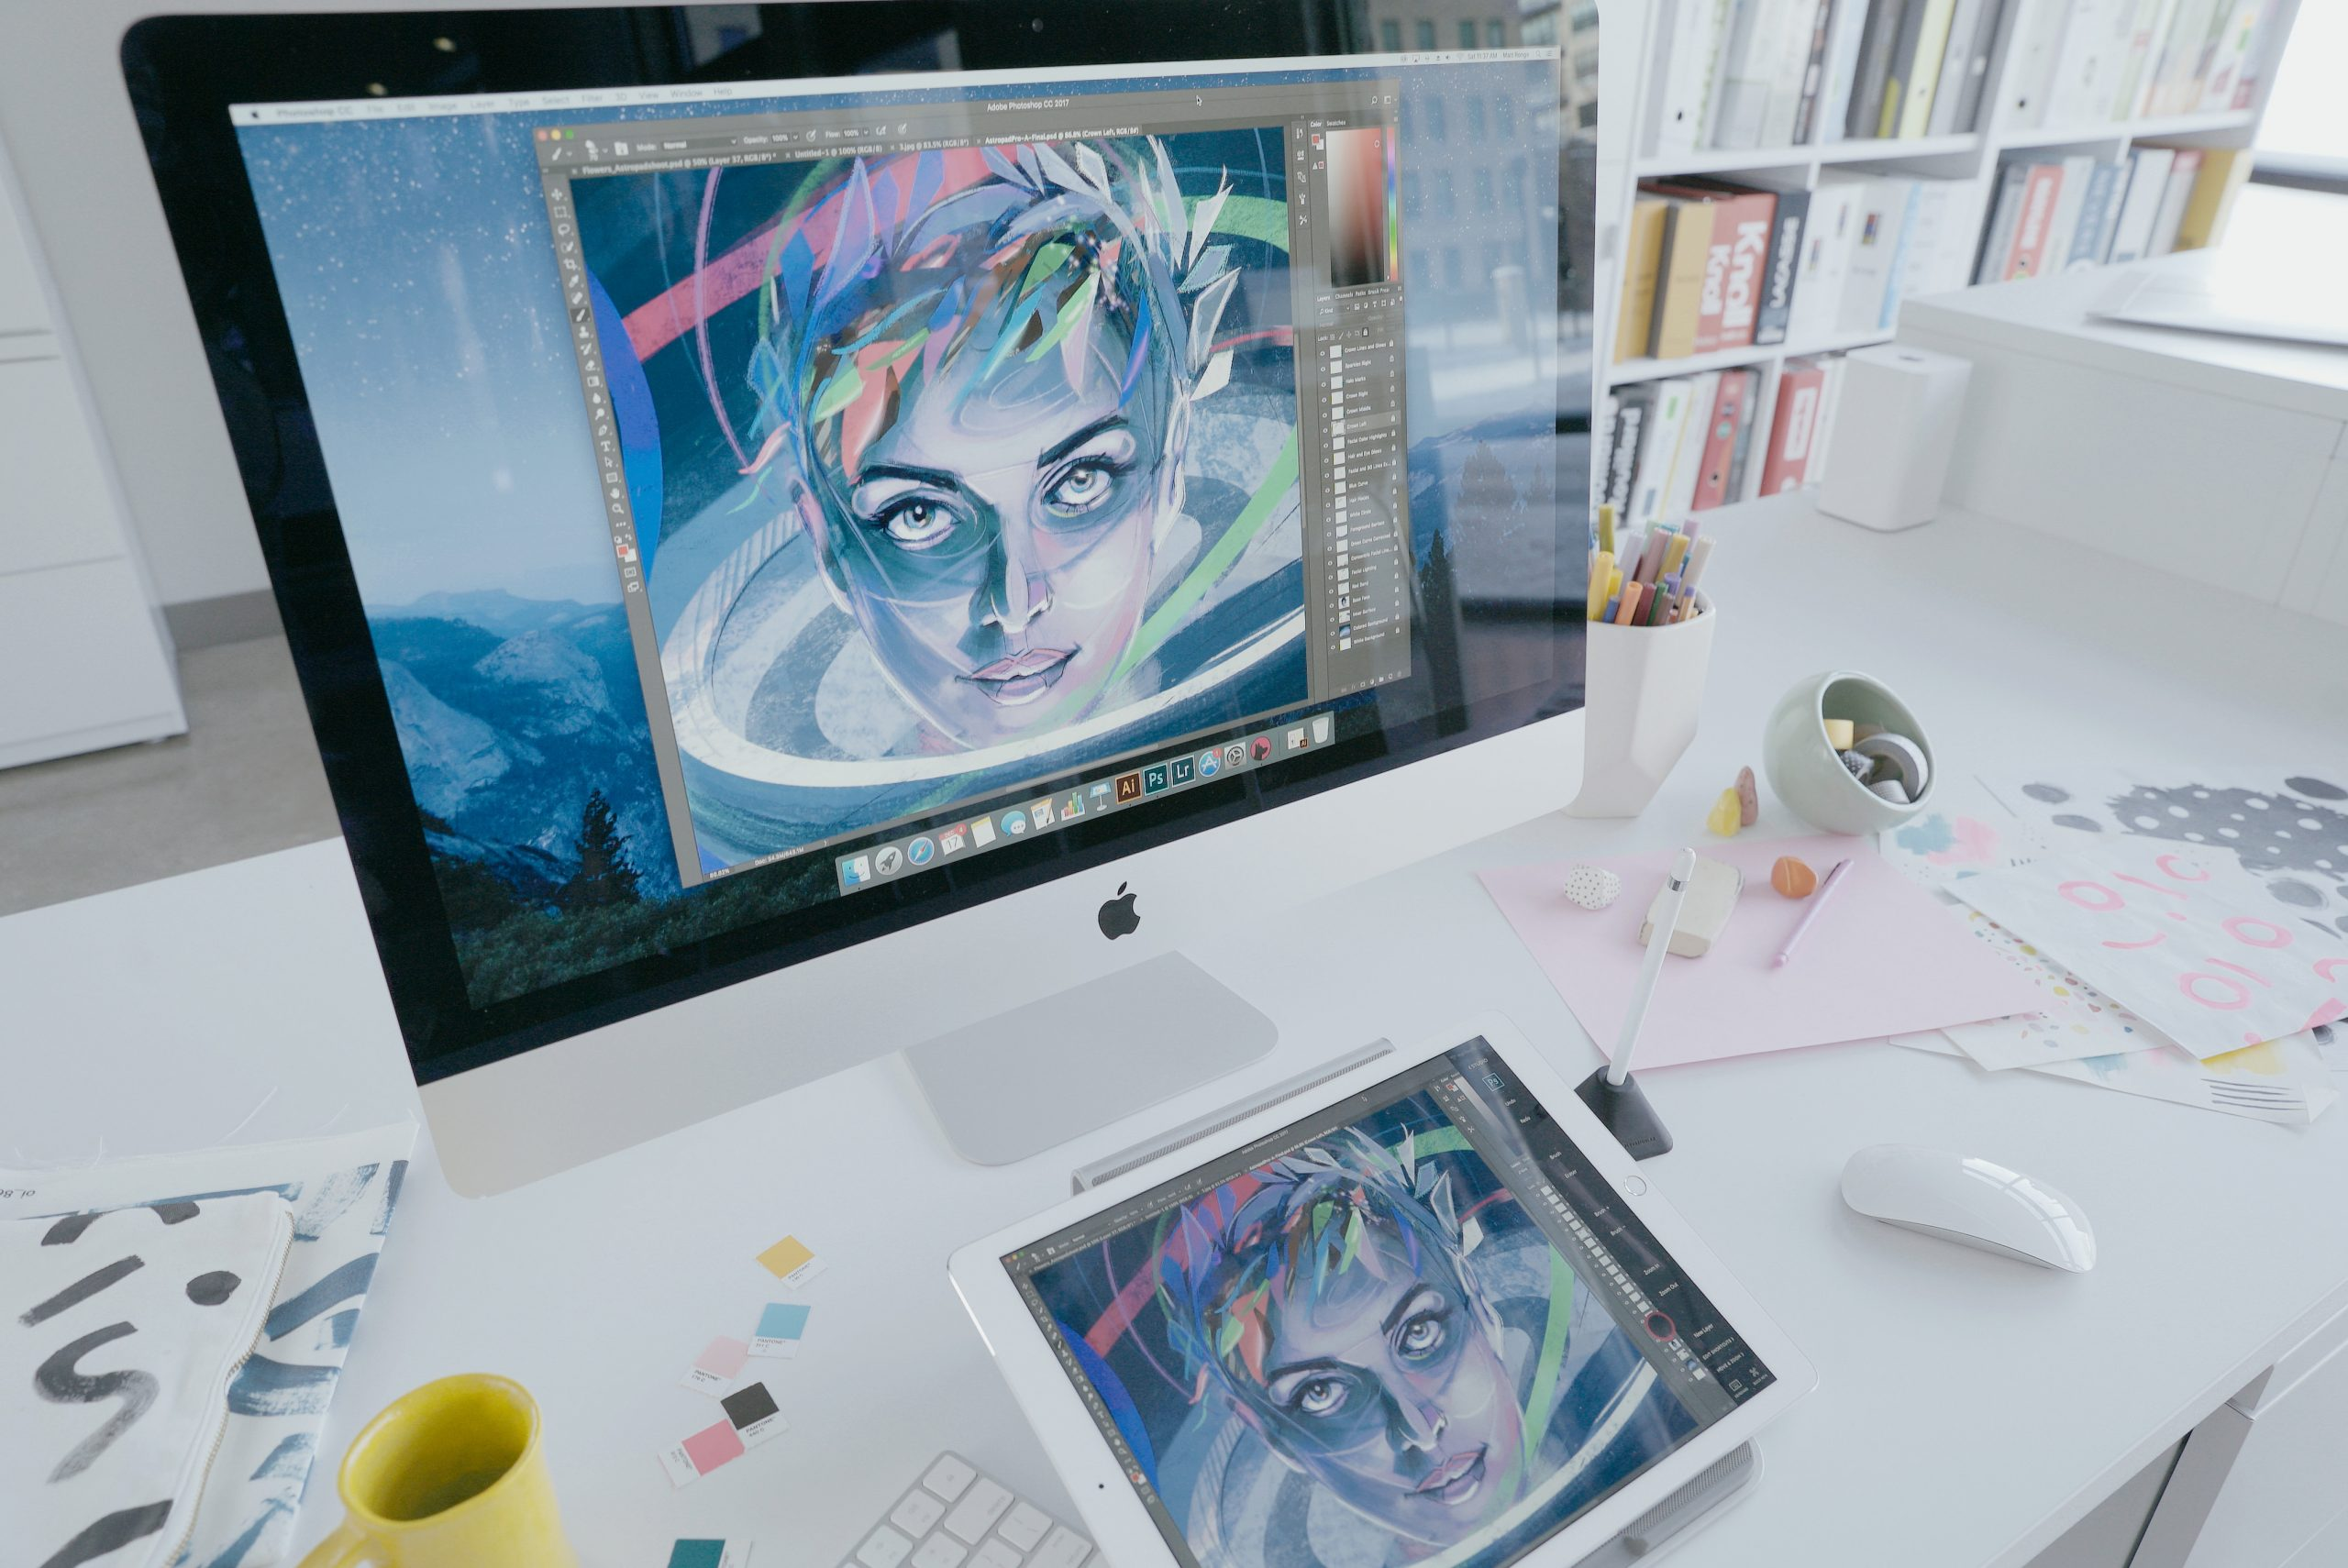 Astropad turns the iPad into a graphics tablet